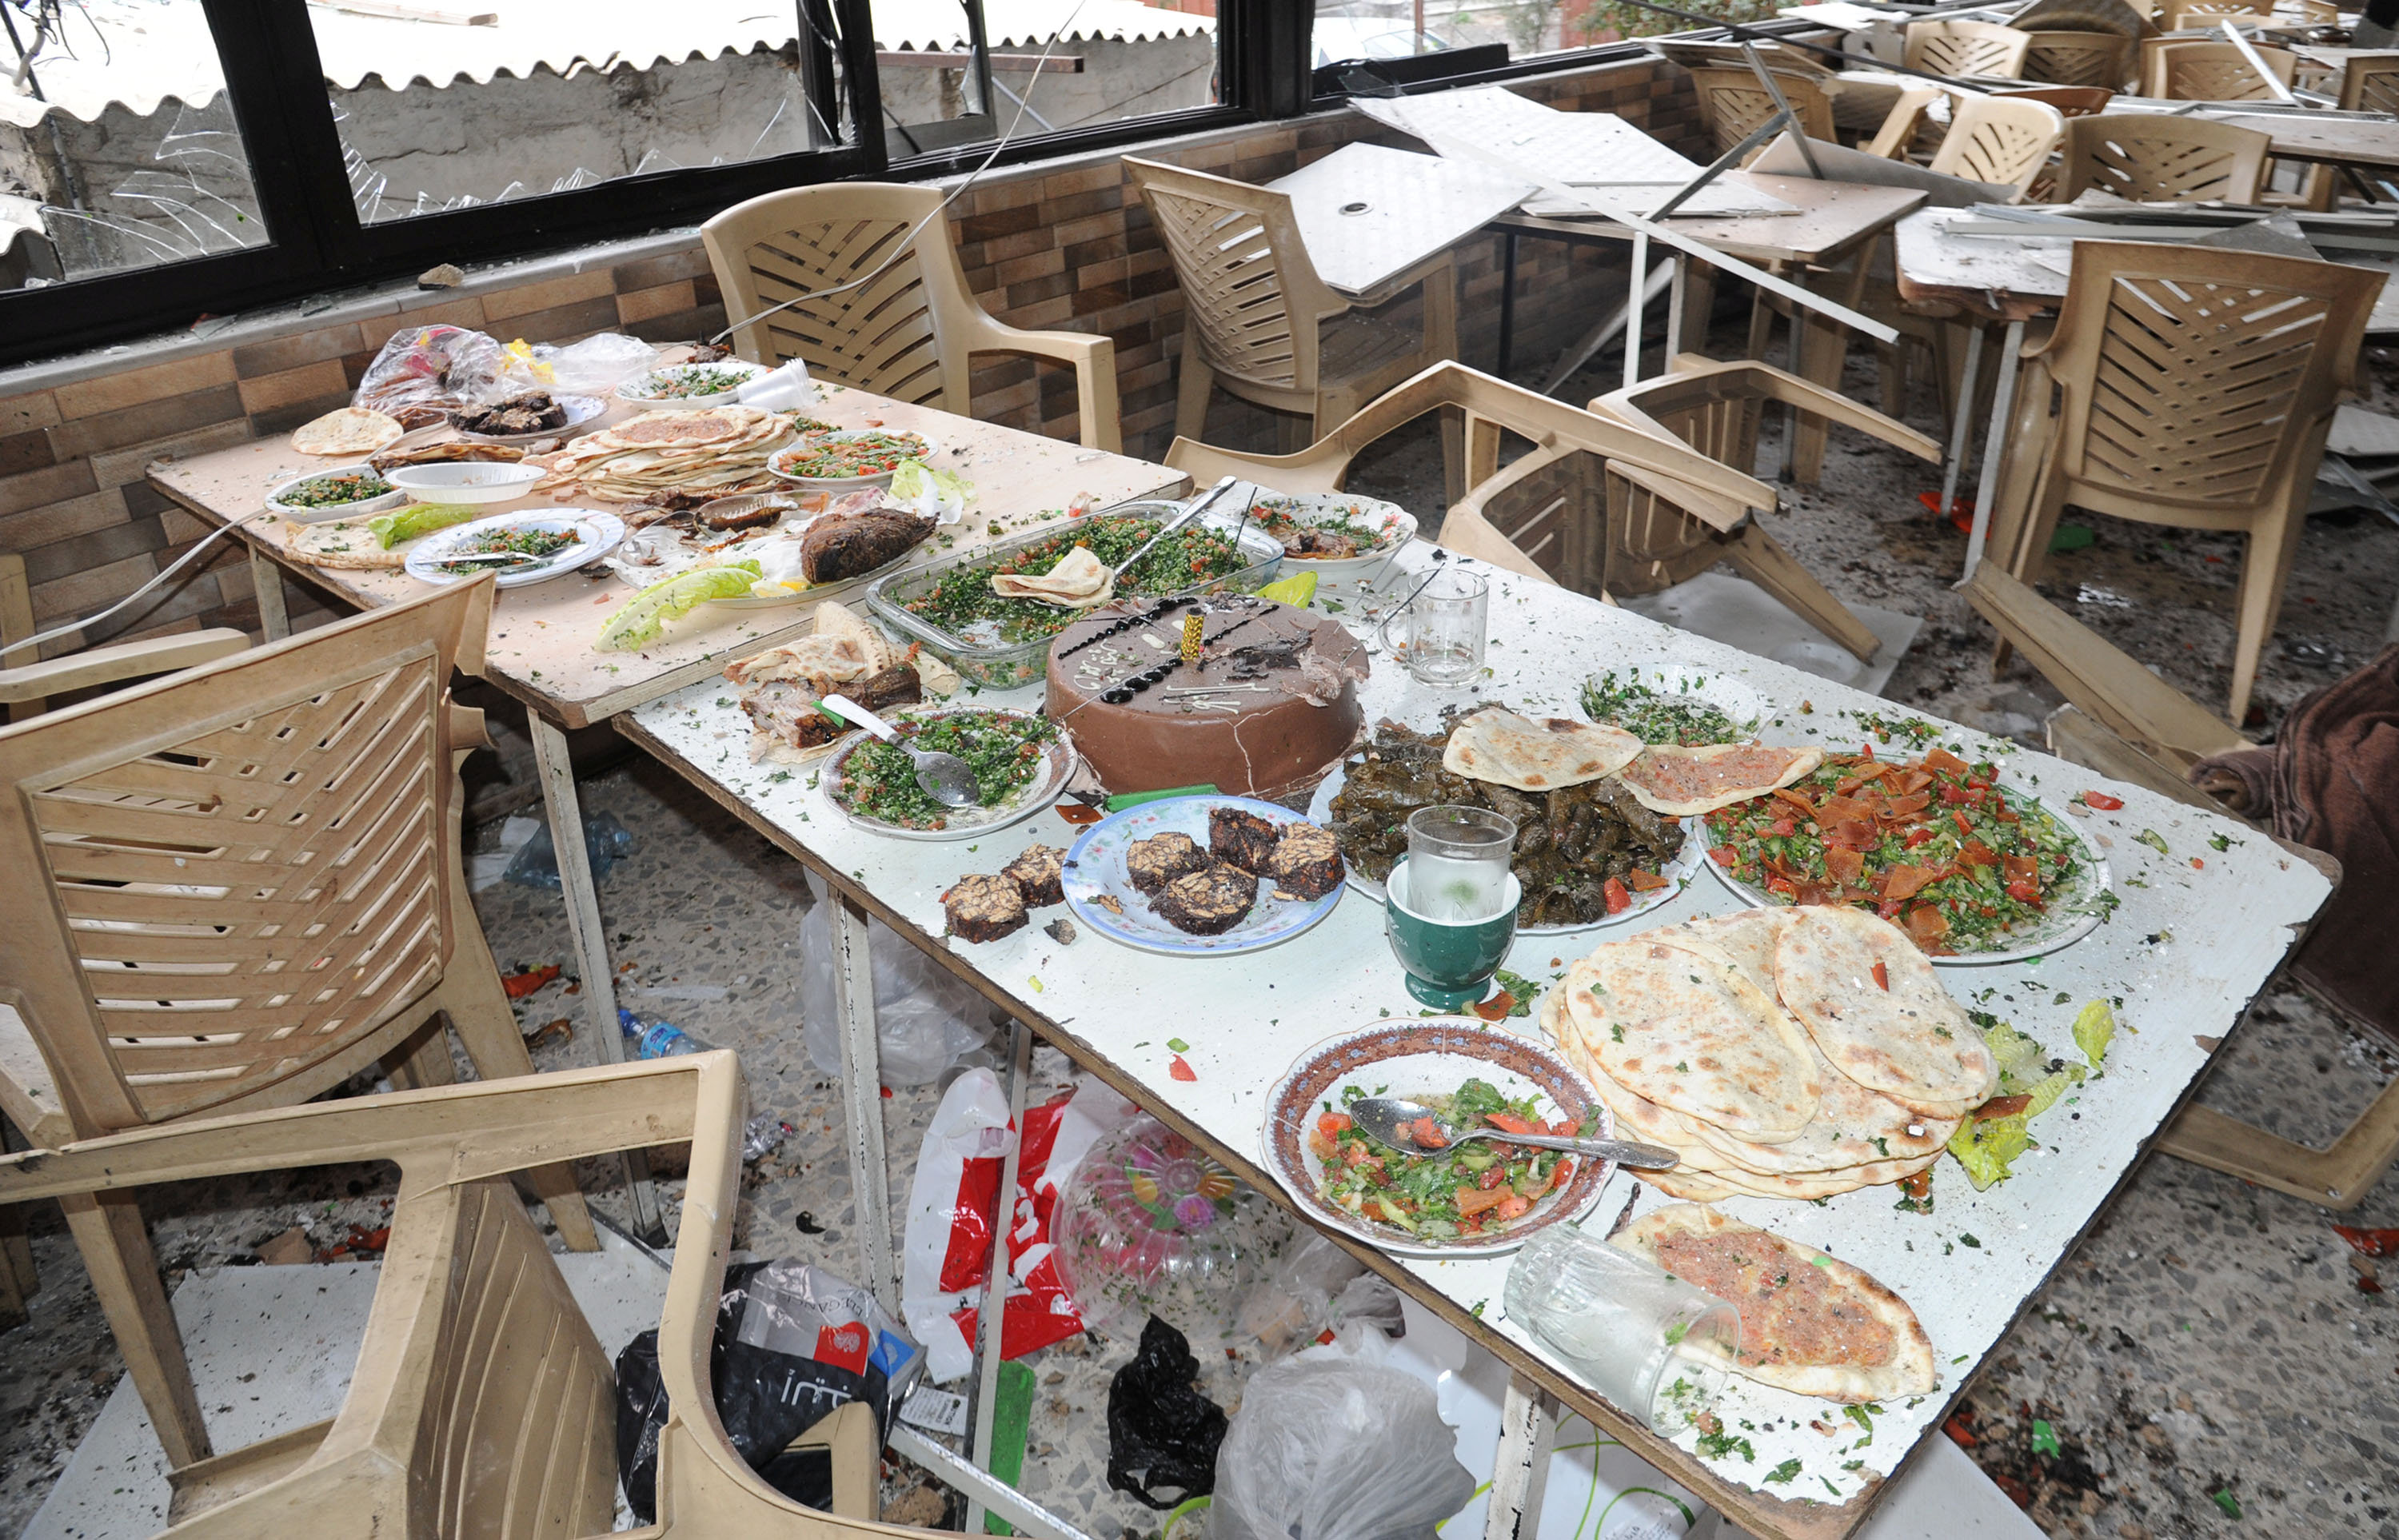 Damage is seen after a suicide attack inside a restaurant in the al-Rabweh area of Damascus in this handout picture provided by SANA on March 15, 2017, Syria.  SANA/Handout via REUTERS